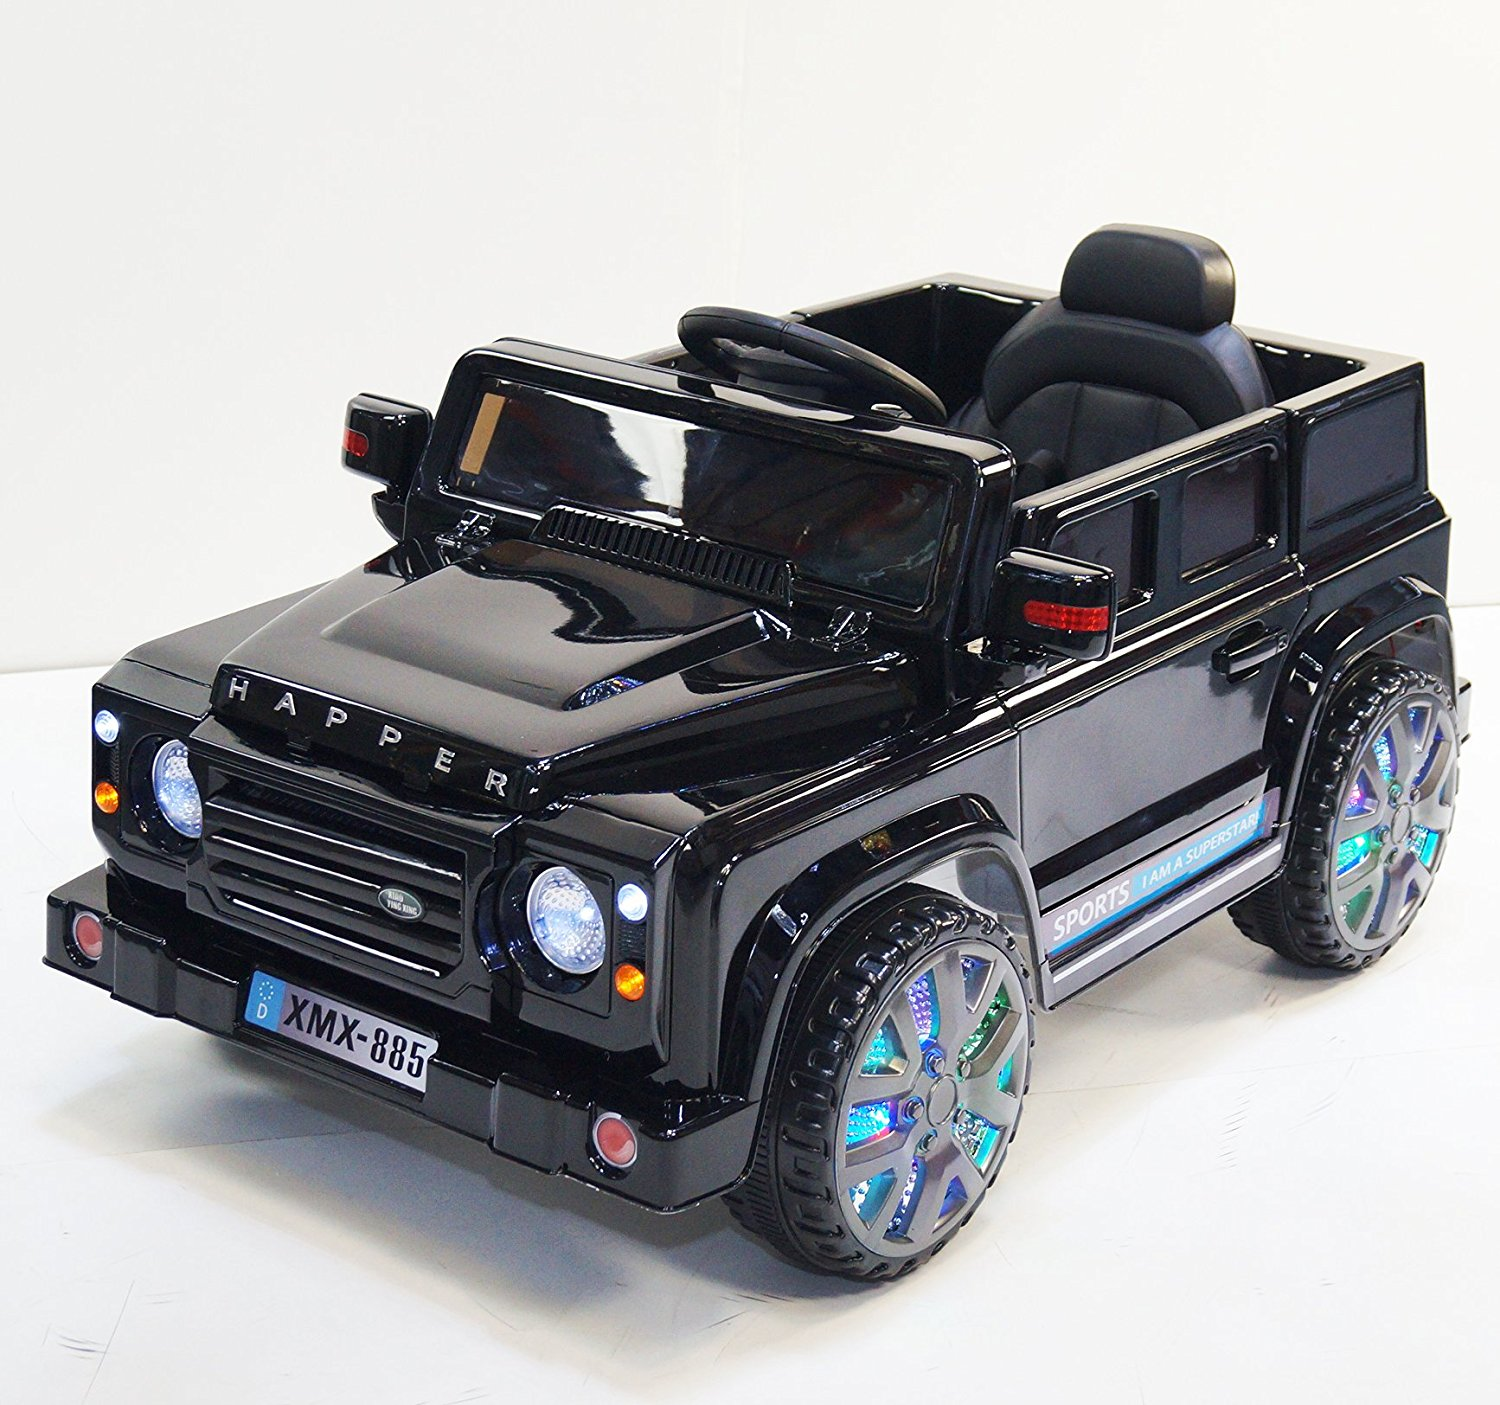 Ride on car LAND ROVER style. Battery operated. With remote control. R/C. For kids, boys and girls, from 2 to 5 years. Car on electric battery 12V total. Two Electric motor. 3 speed. MP3.